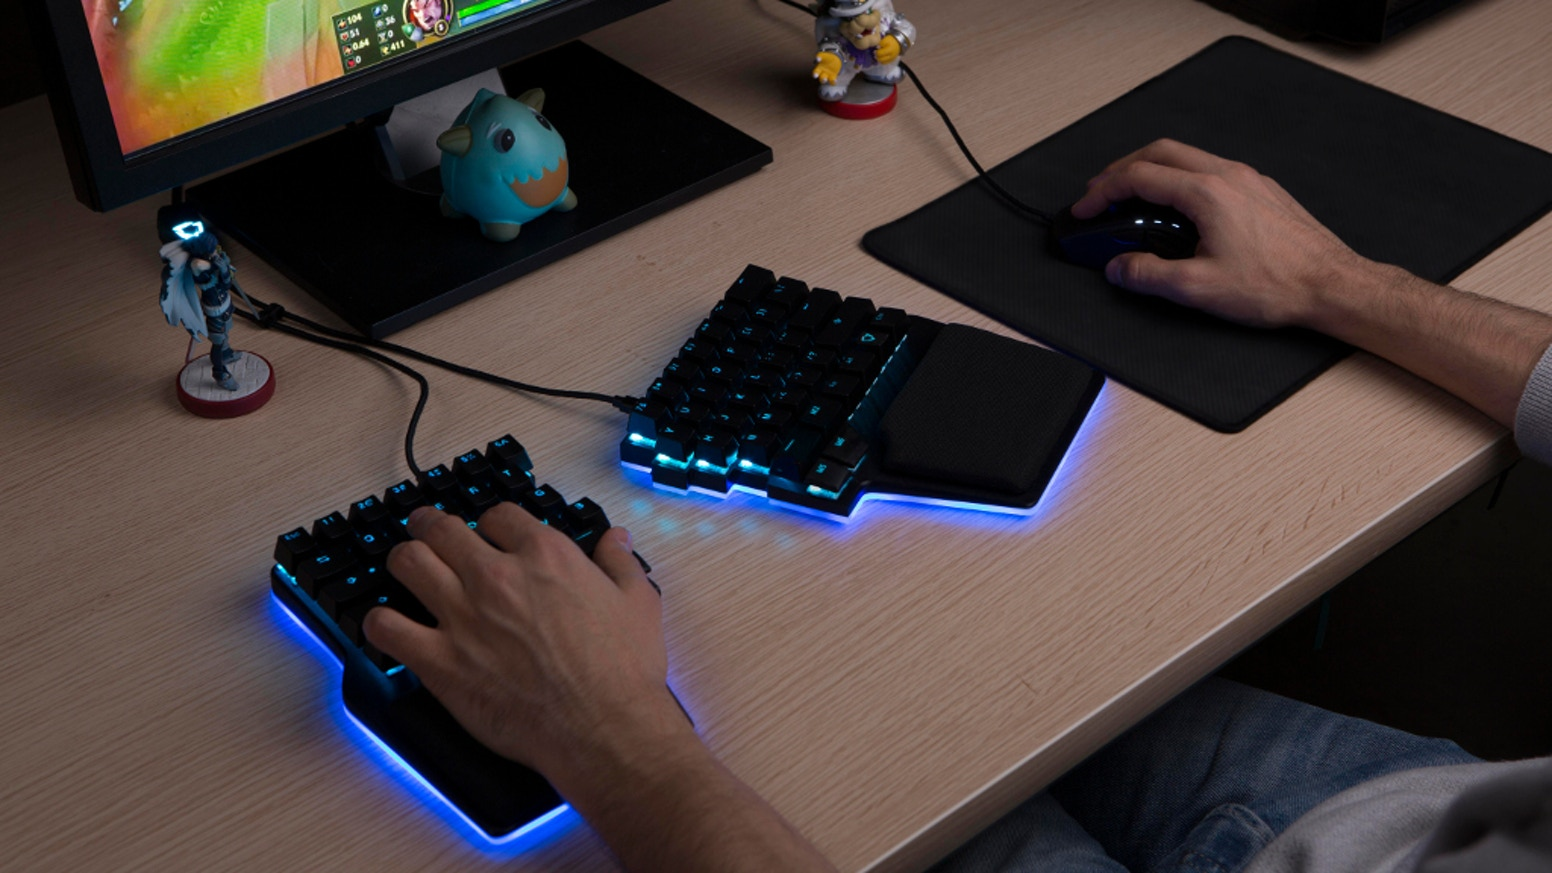 Dygma Raise is an ergonomic keyboard for esports. It's designed to increase gamers' performance, health and comfort.